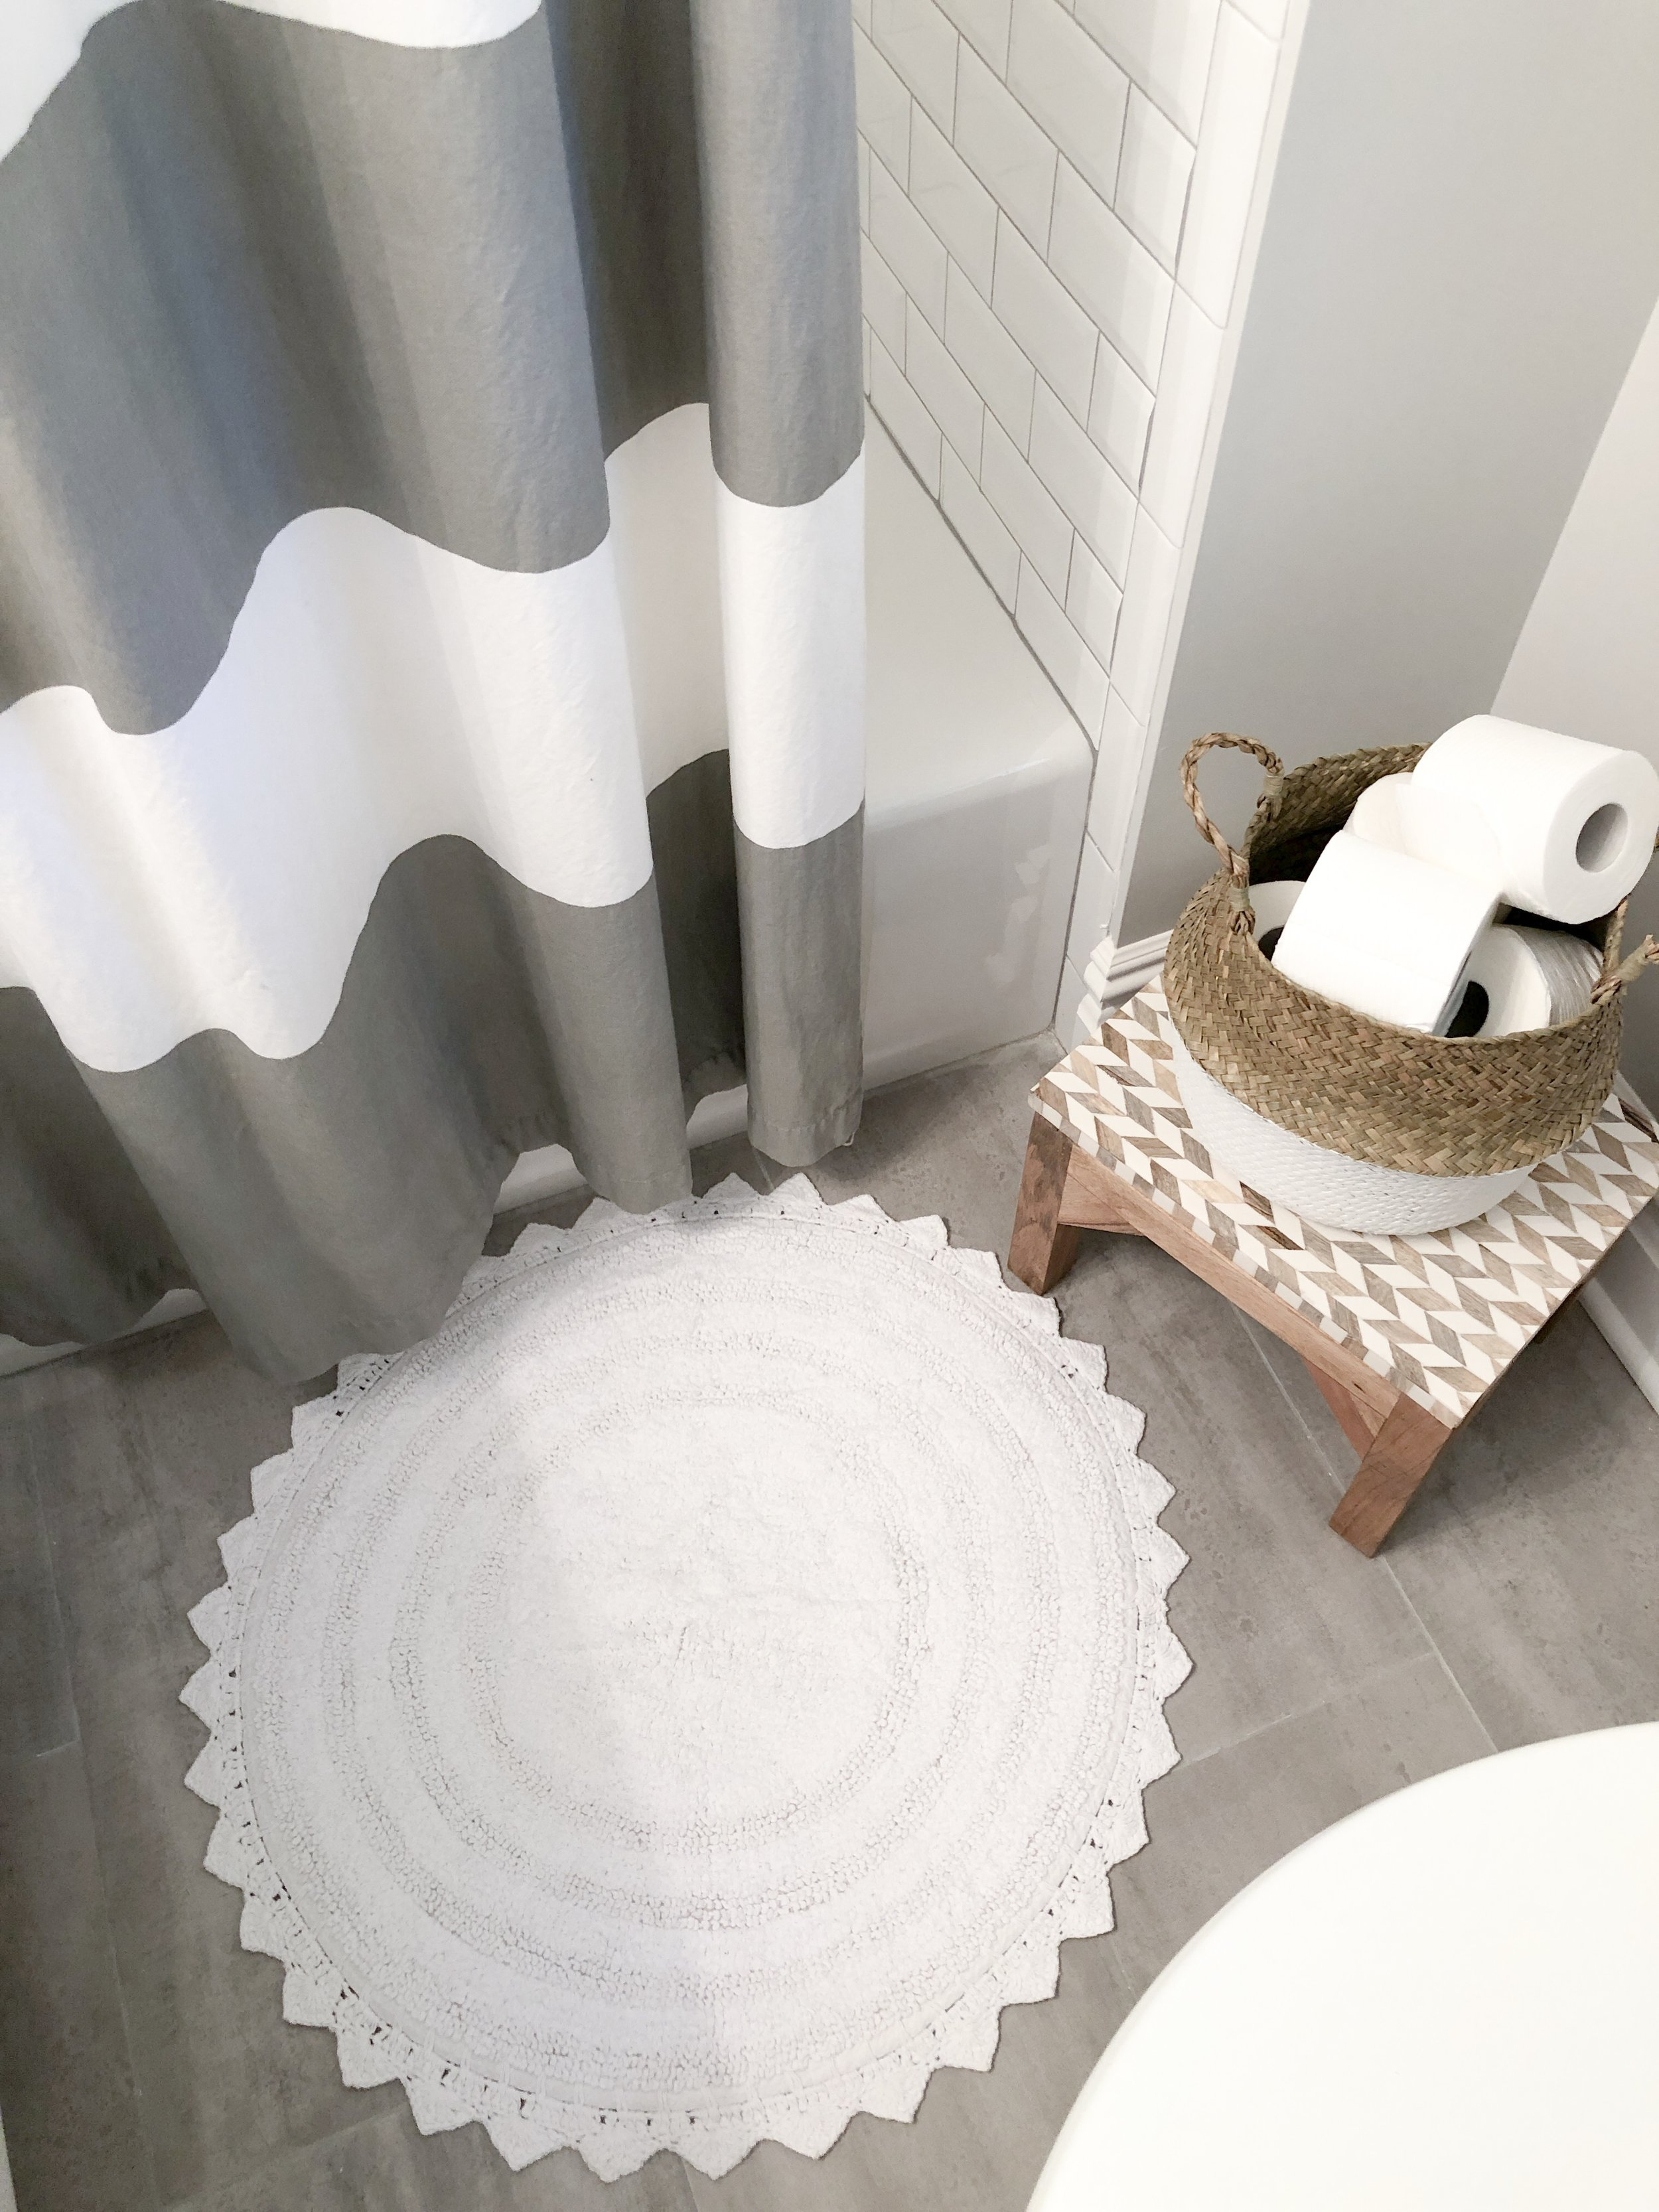 Tiny white vintage-looking bathmat fits perfectly up here!